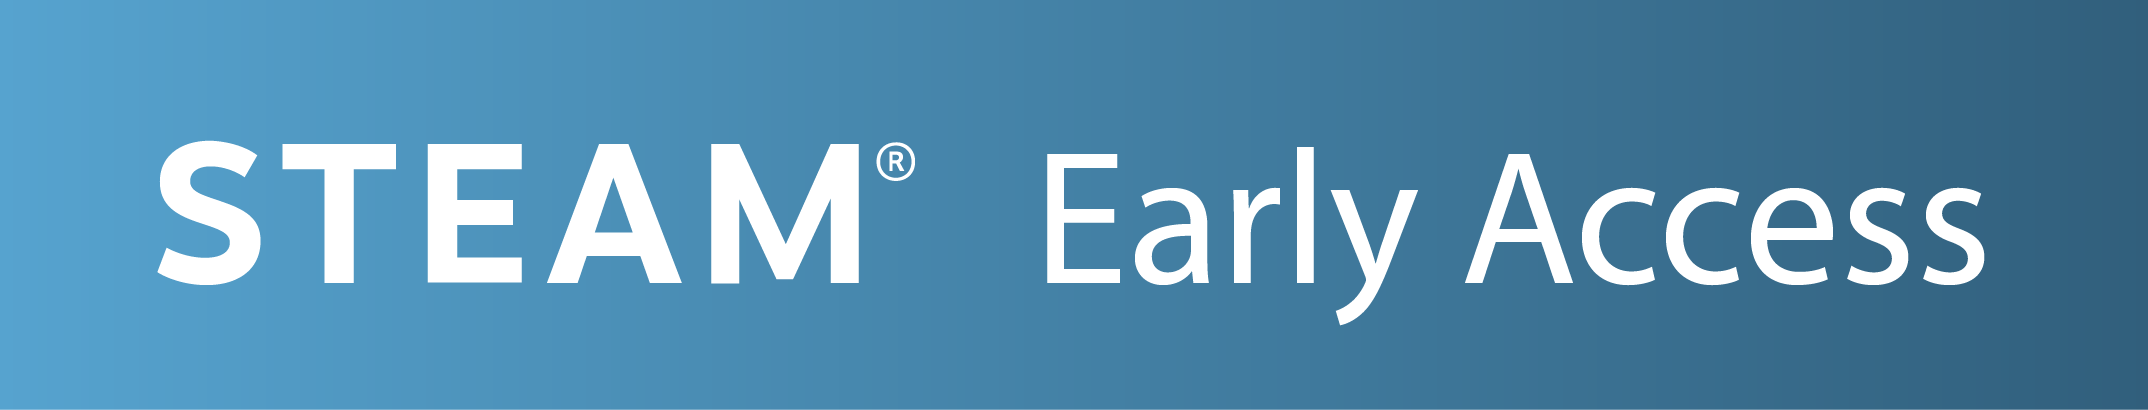 steam early access logo